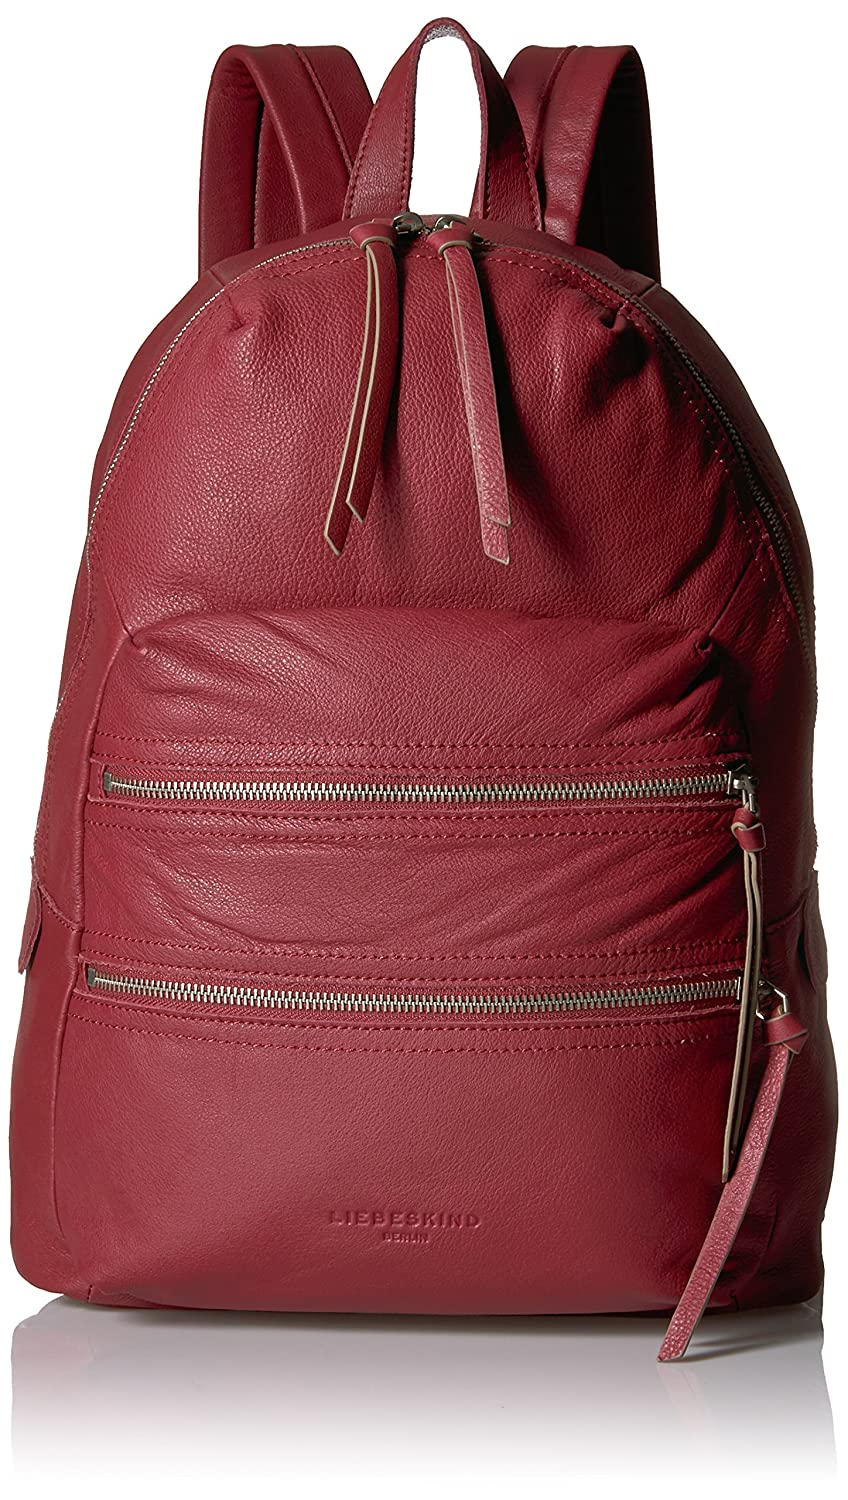 1460340719d4d Liebeskind Berlin Unisex Saku7b Leather Backpack  Amazon.co.uk  Shoes   Bags